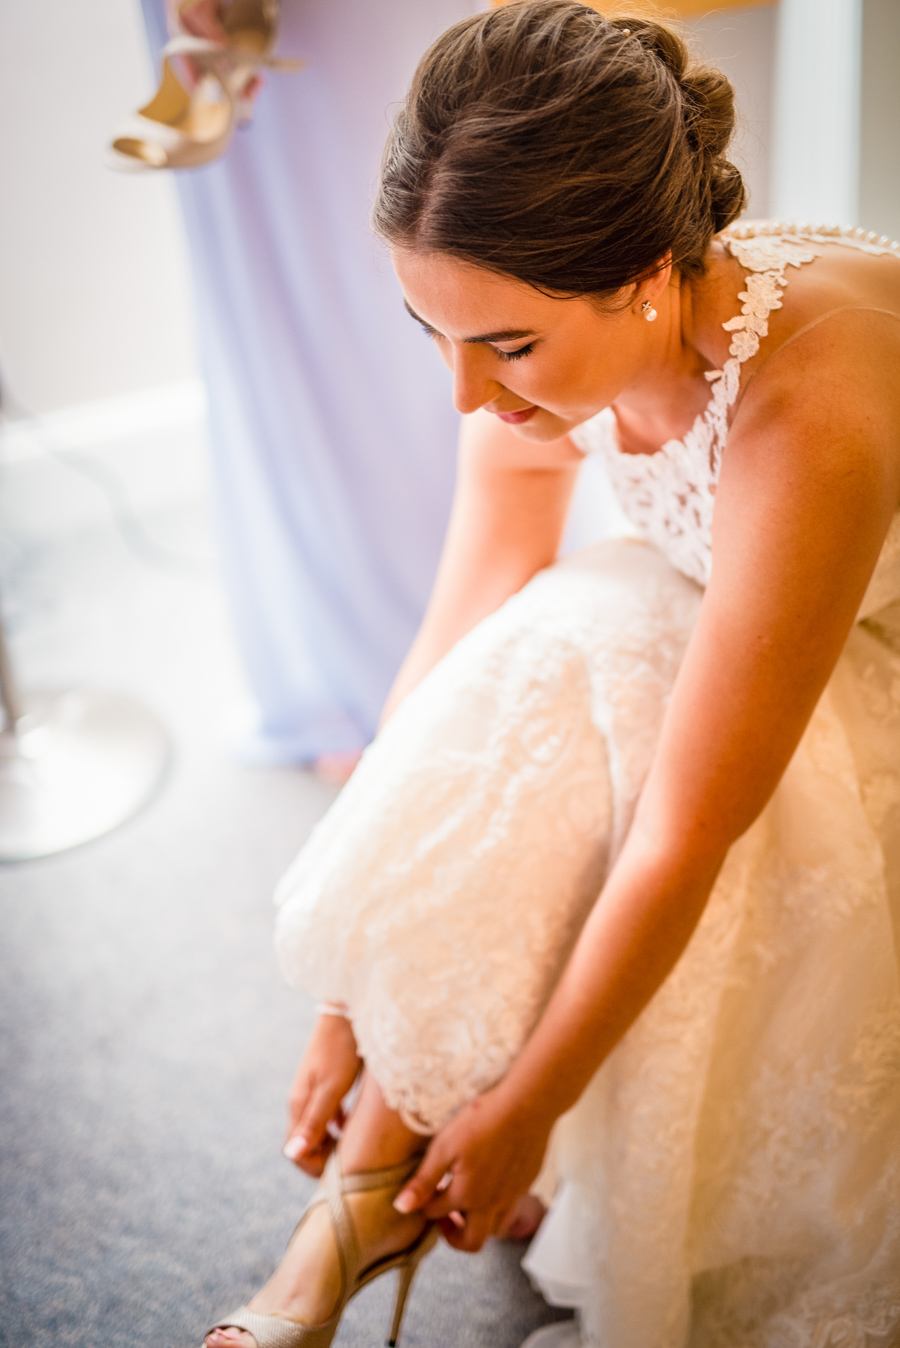 Tom & Alex's creative South Downs wedding, with GK Photography (3)